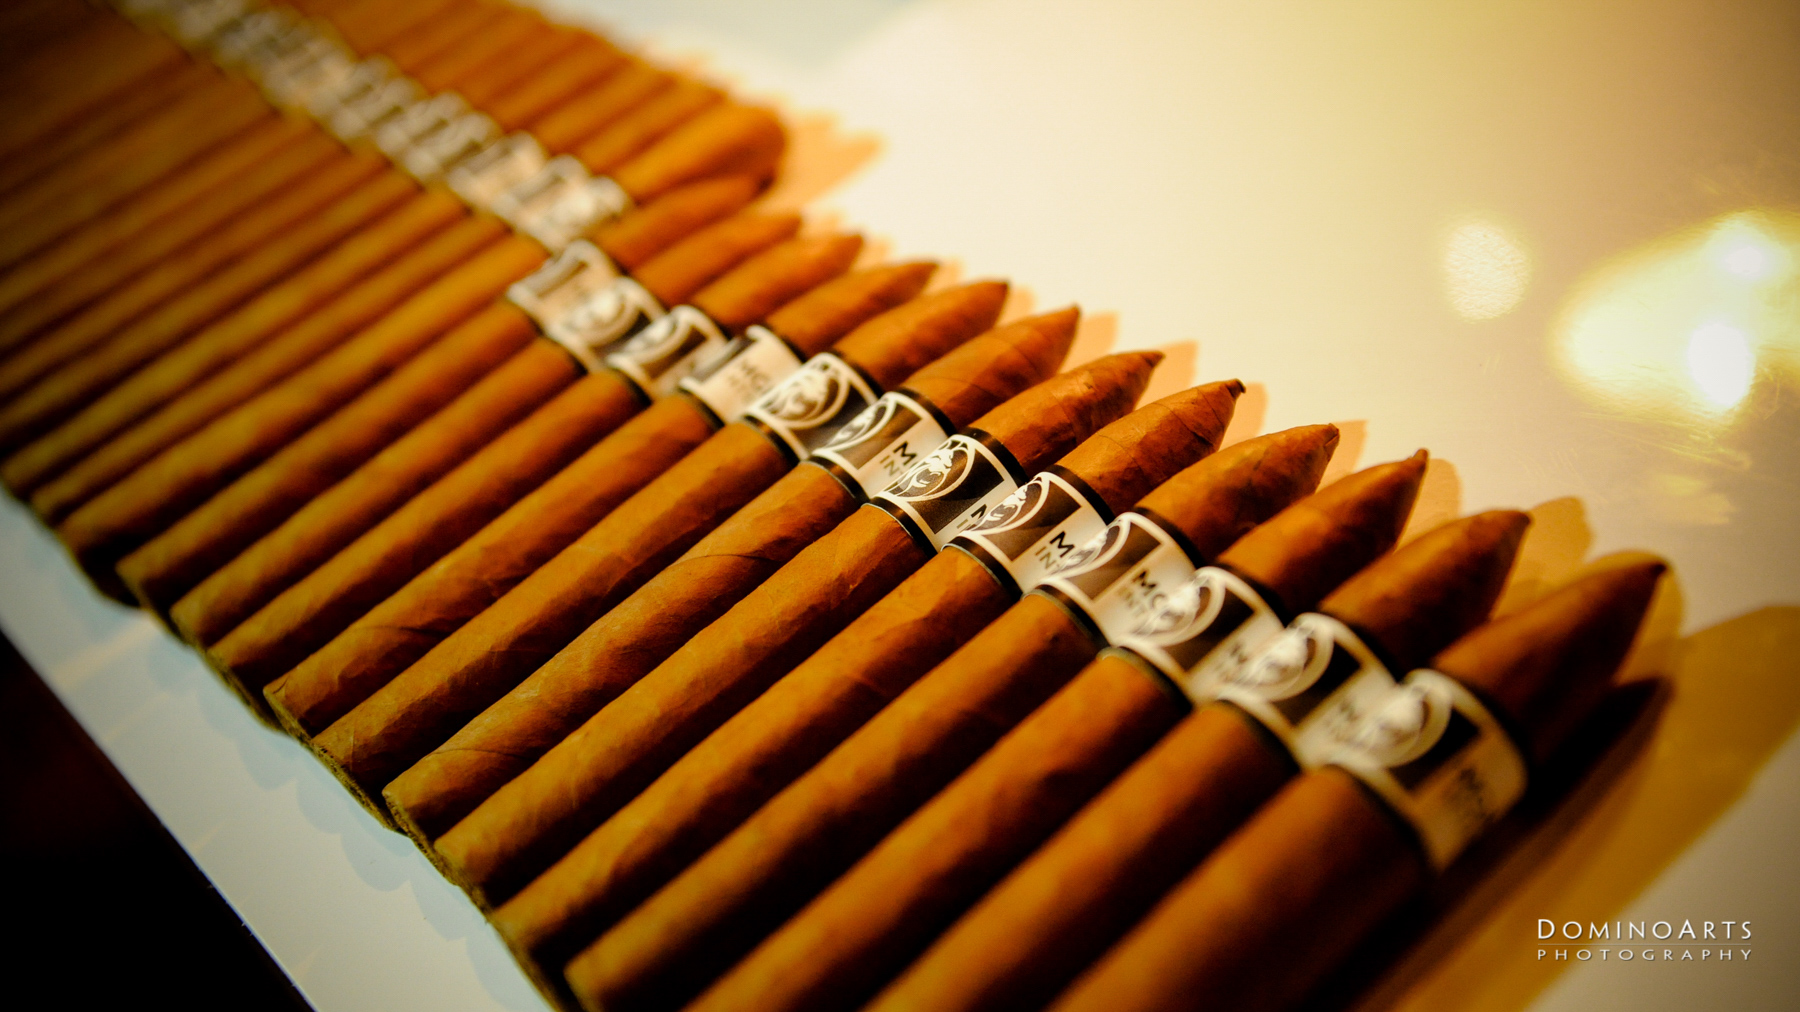 Hand rolled cigars at Corporate Event MGM Resorts International at SLS South Beach, Miami